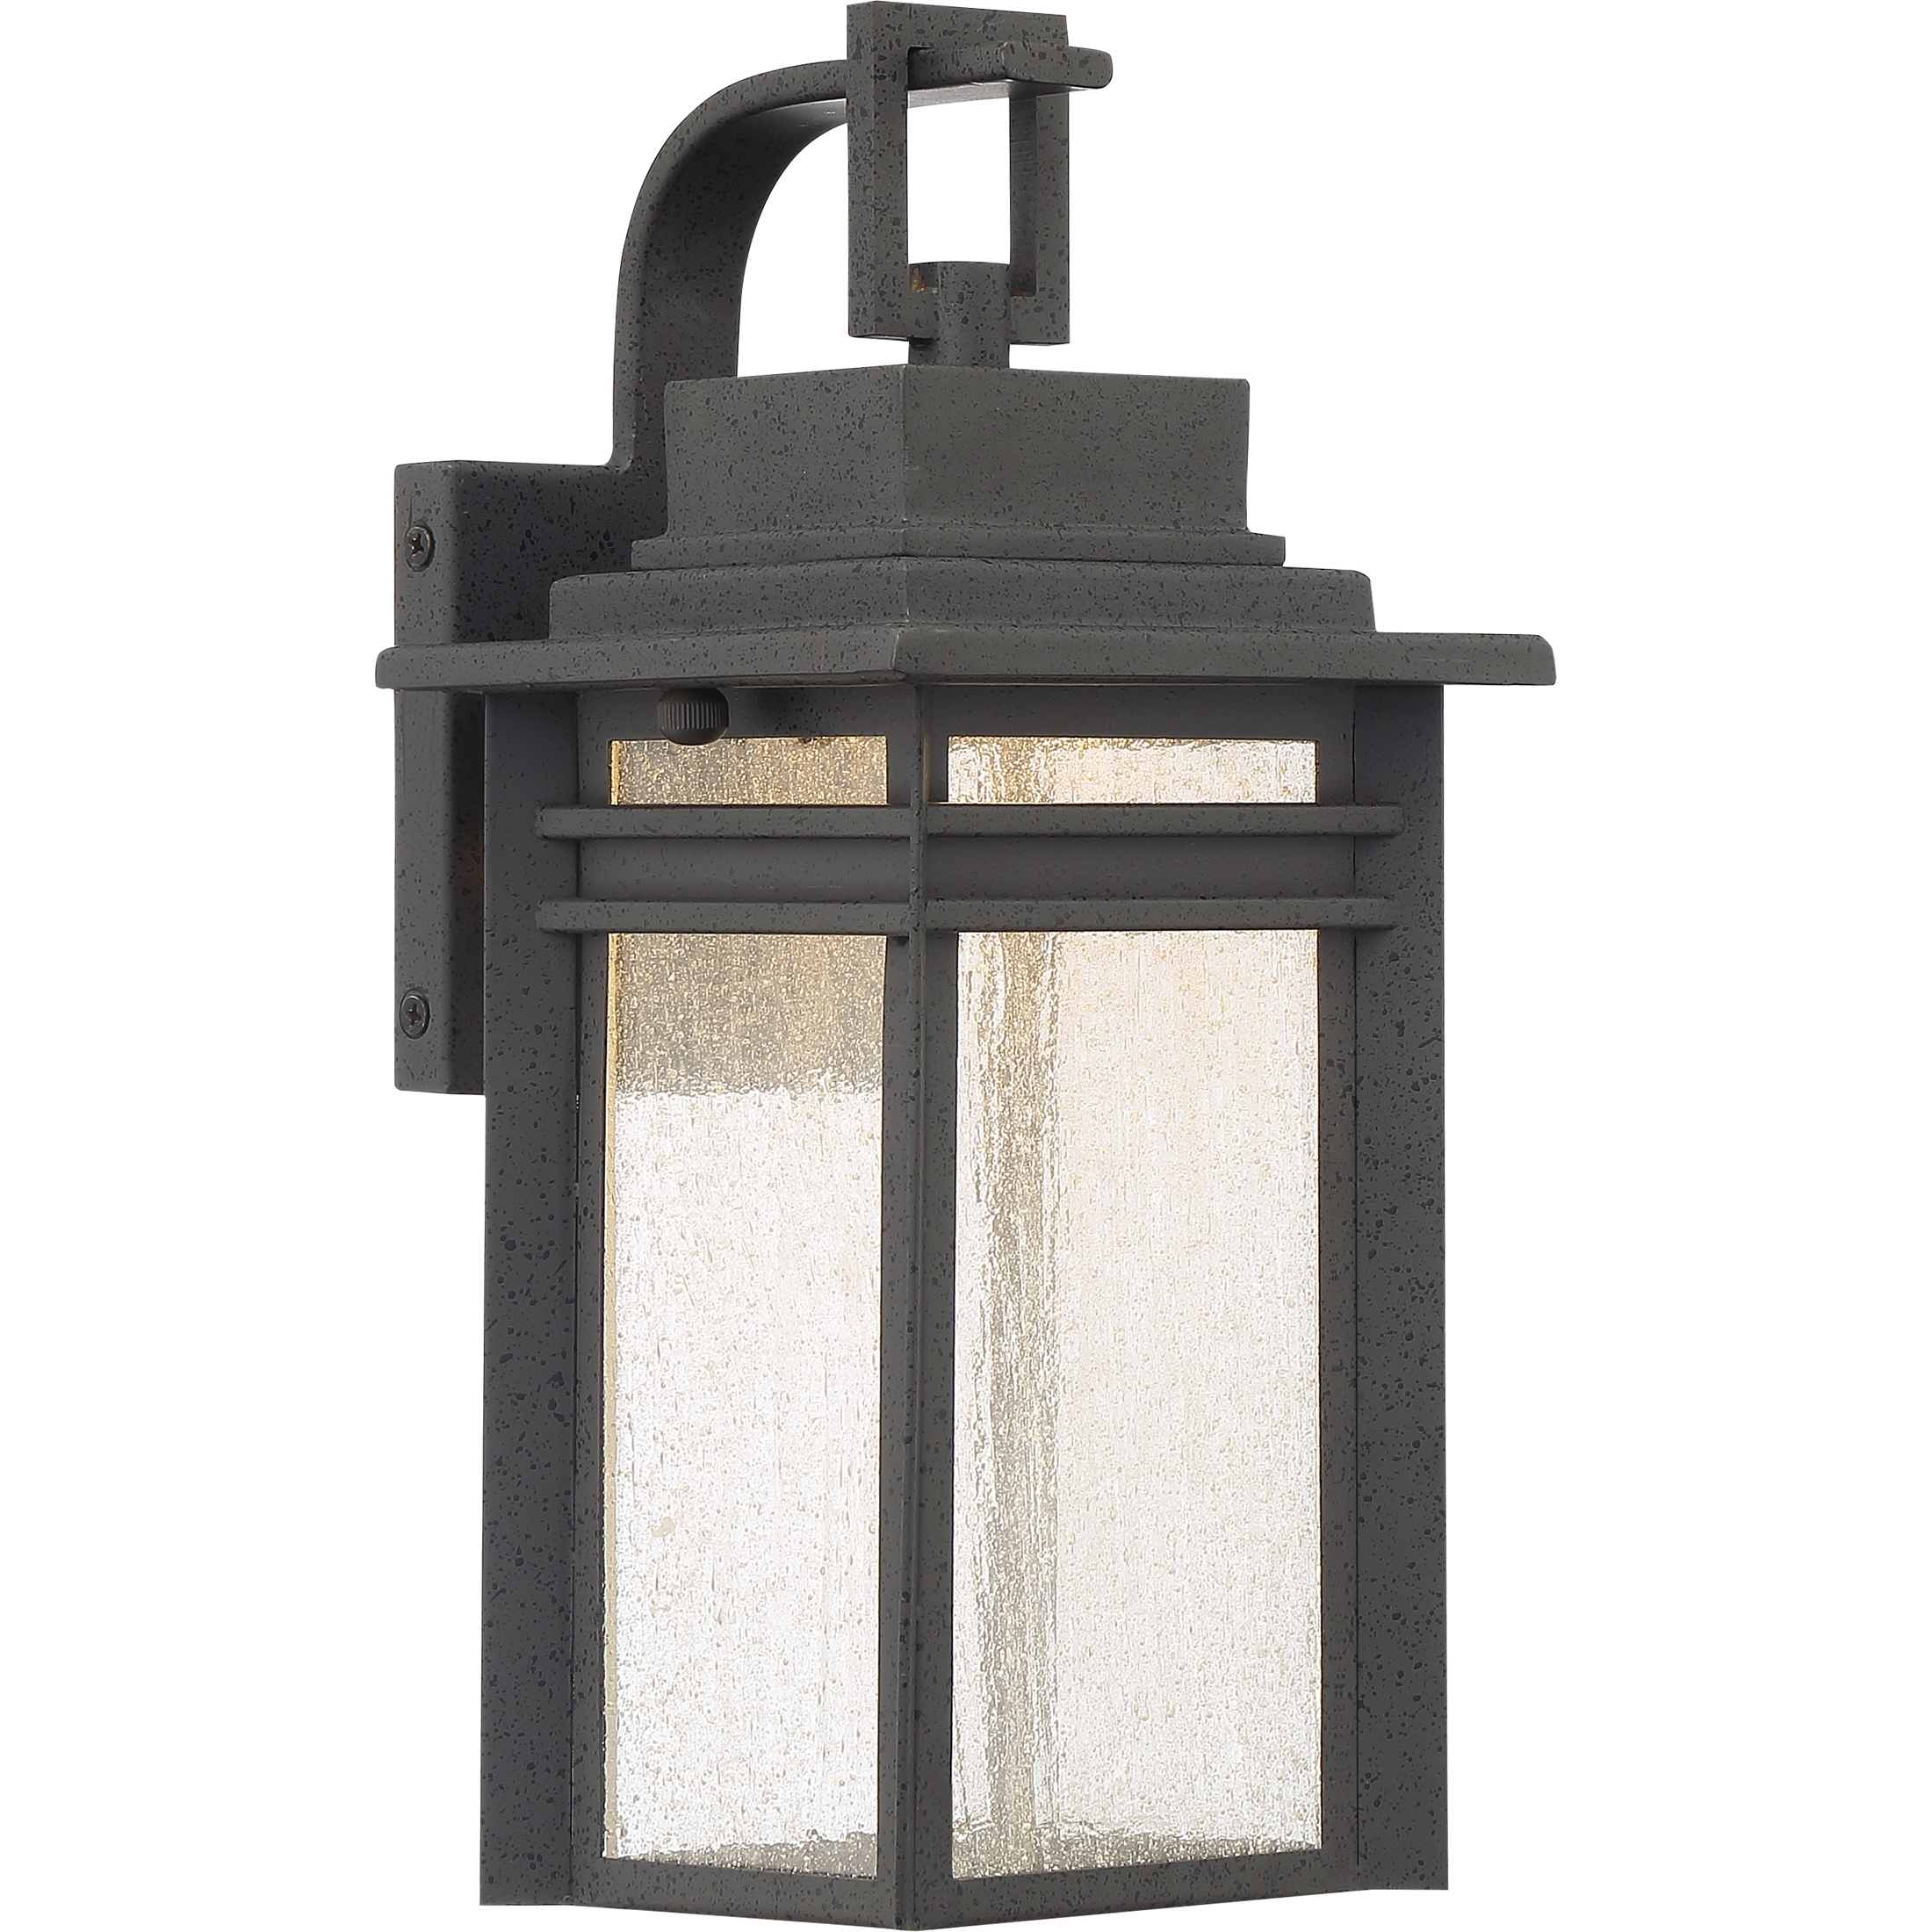 Outdoor Wall Lightquoizel | Bec8406Sbk inside Beacon Outdoor Wall Lighting (Image 6 of 10)